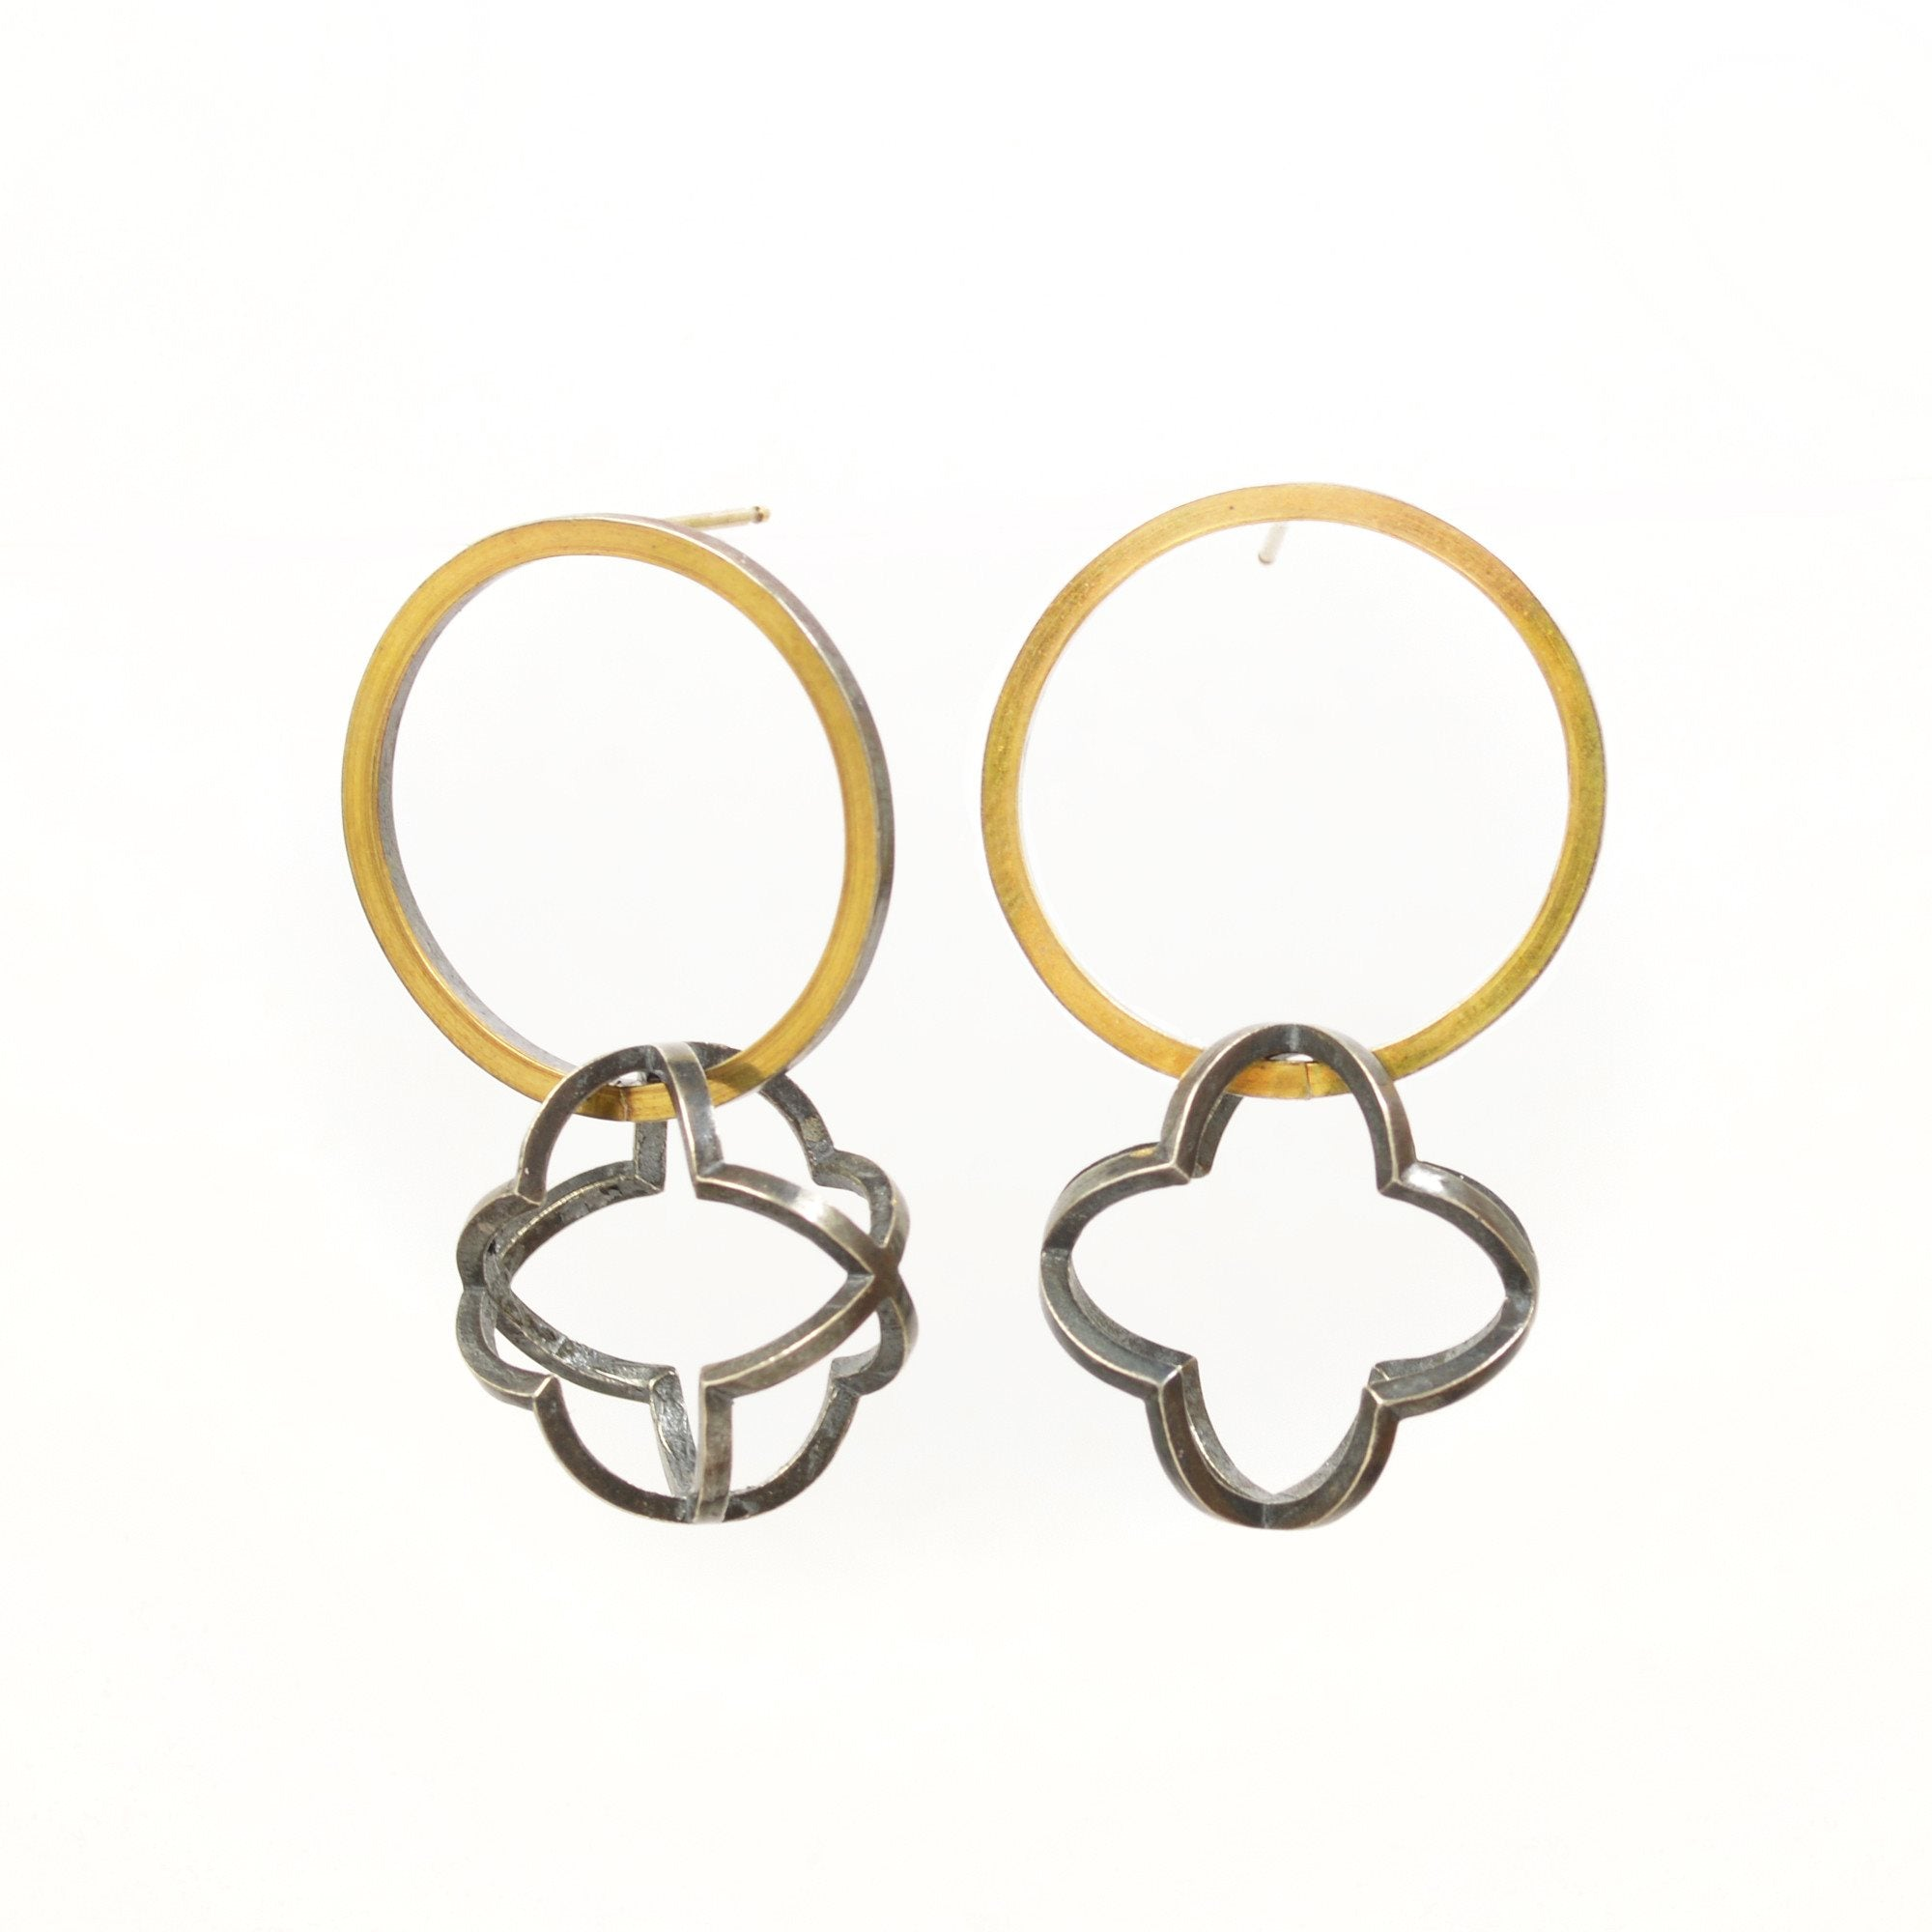 Quatrefoil Orbit Hoop Earrings in 22k gold, Sterling silver with Black Patina